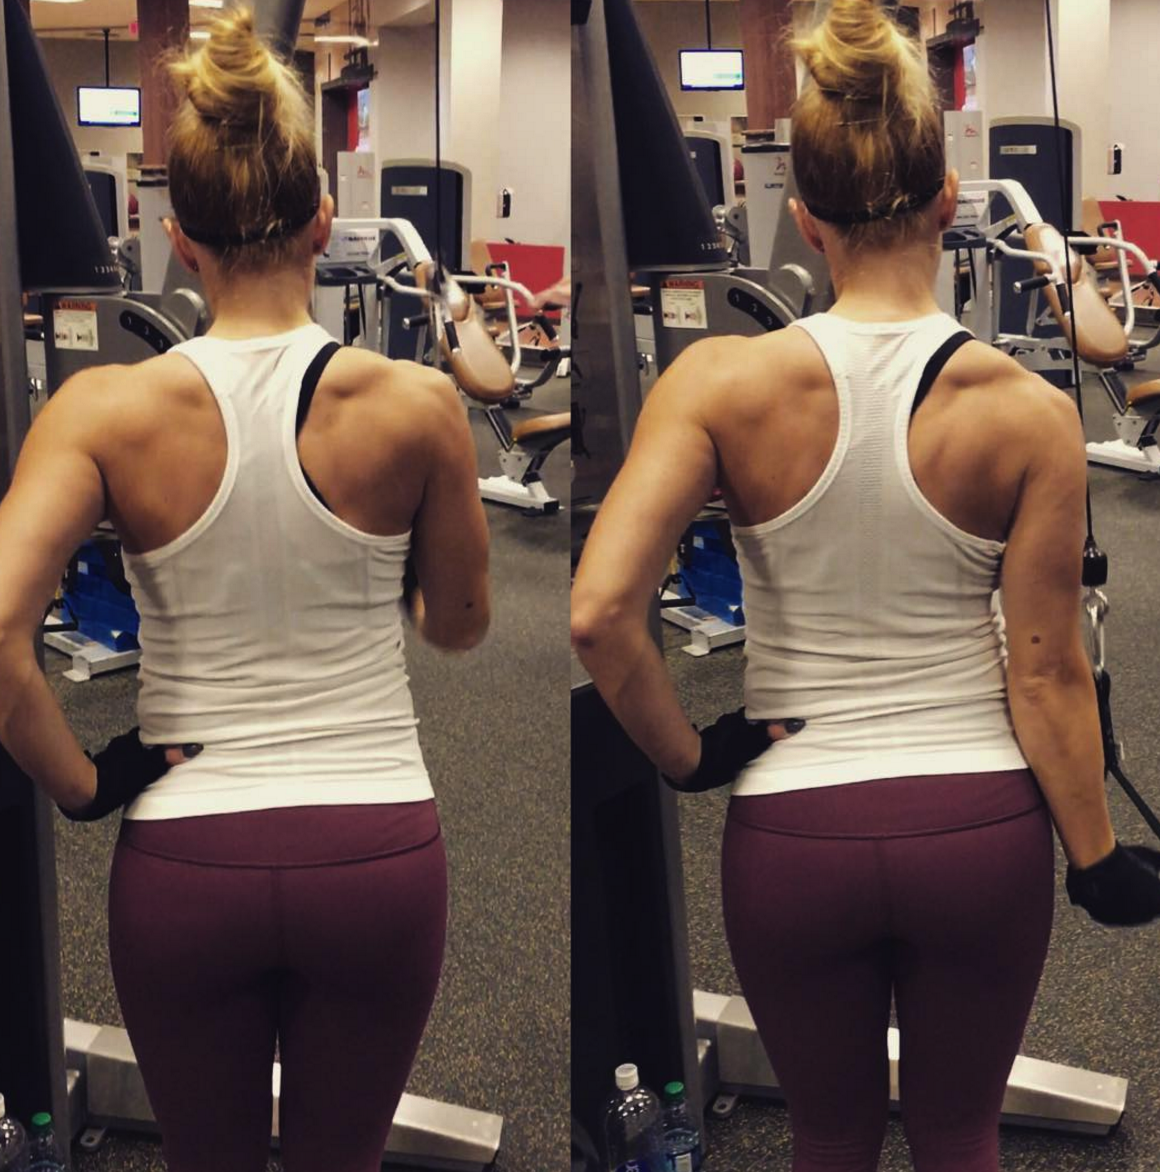 Muscle definition vs. bulking up: toning and definition is achievable with proper diet and exercise, while bulking up for women is much harder to achieve, unless it is your intended purpose & target.